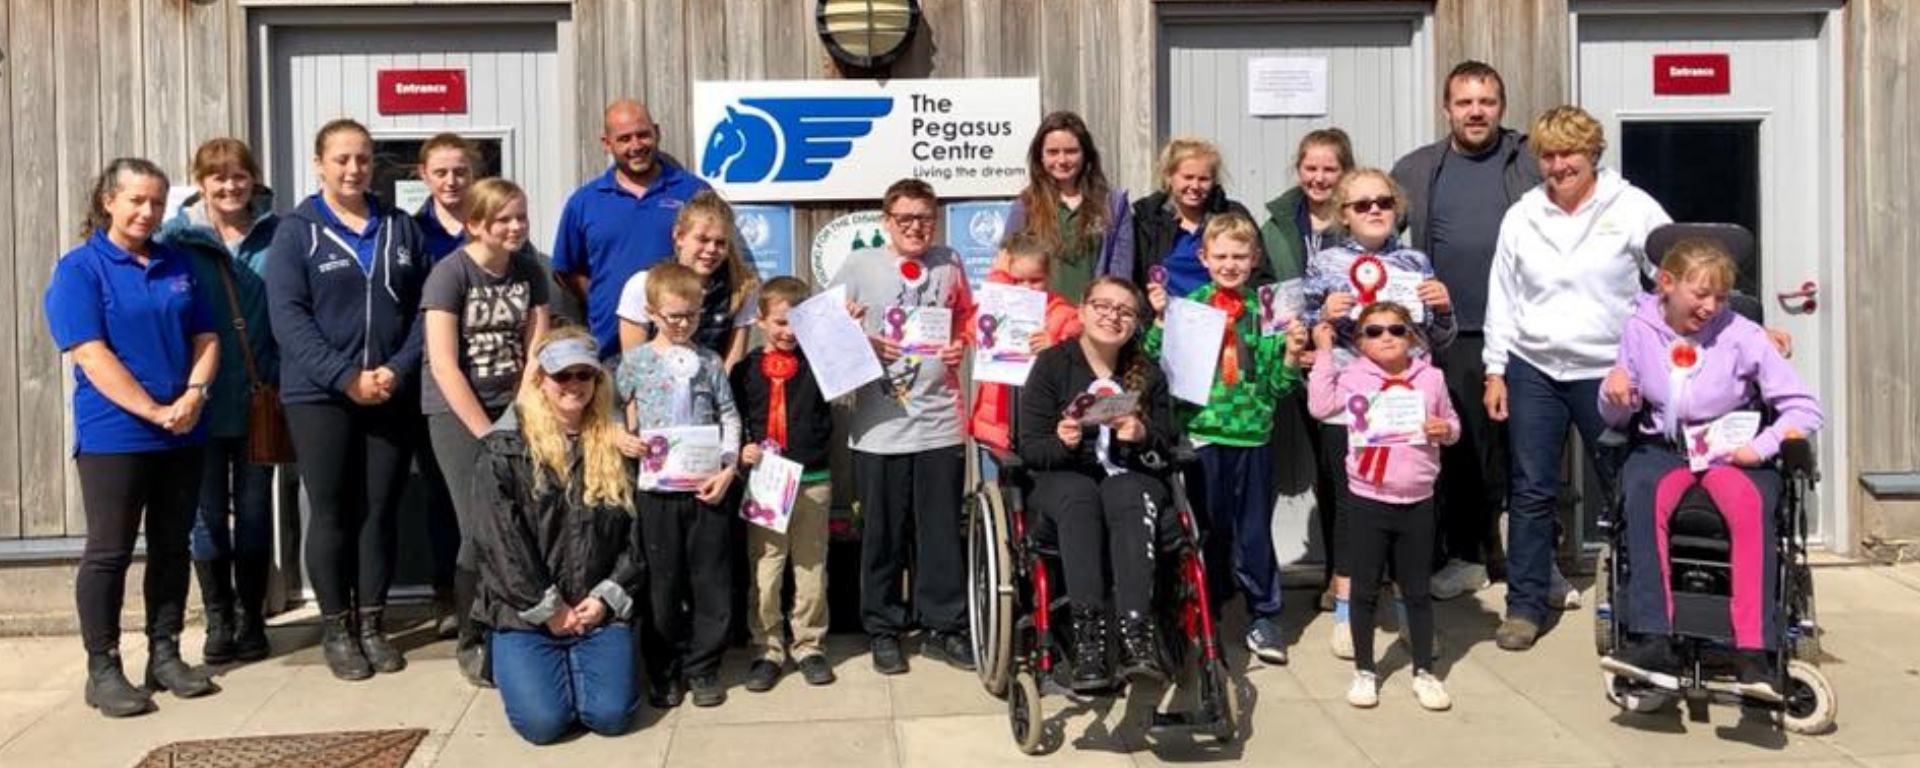 Children with visual impairments saddle up at Pegasus